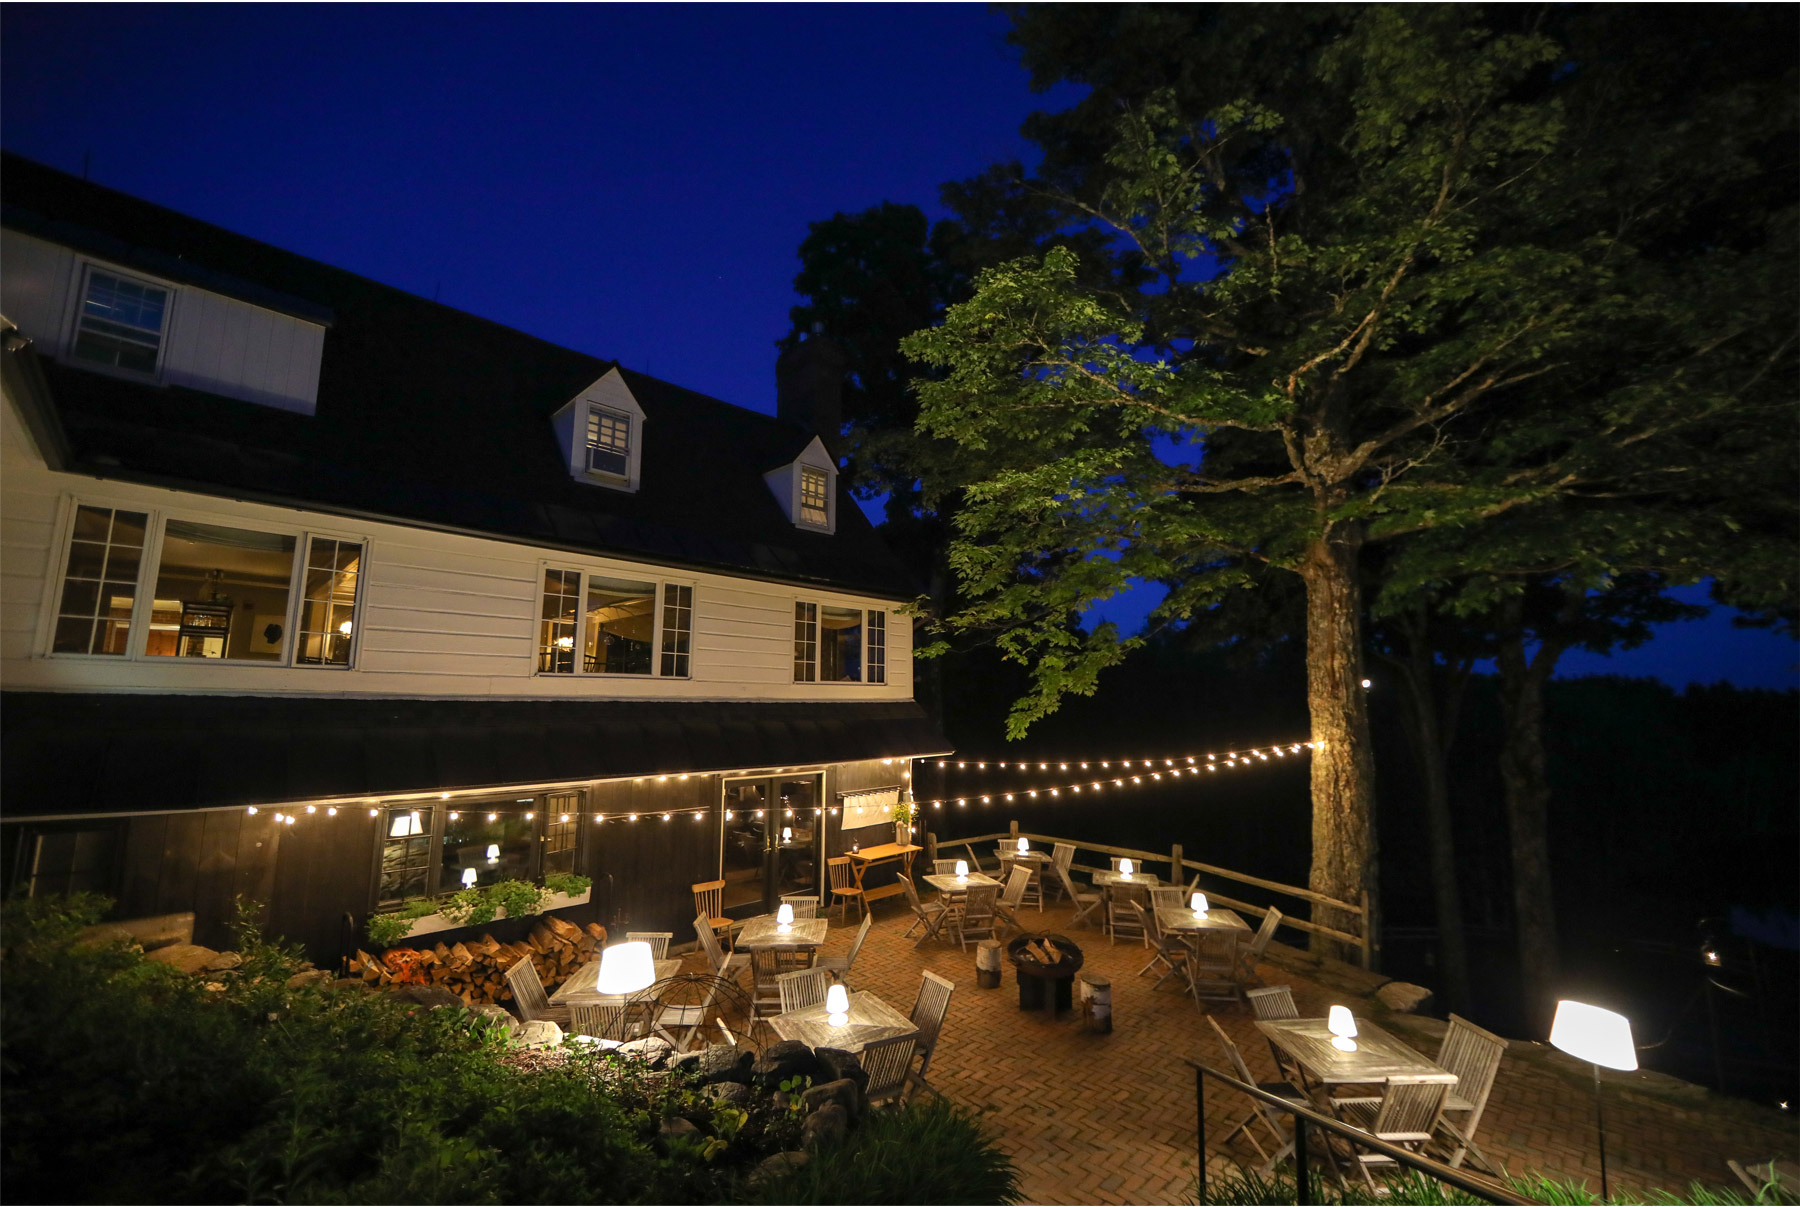 05-Stowe-Vermont-by-Andrew-Vick-Photography-Edson-Hill-Summer-Lodge-Patio-Night.jpg